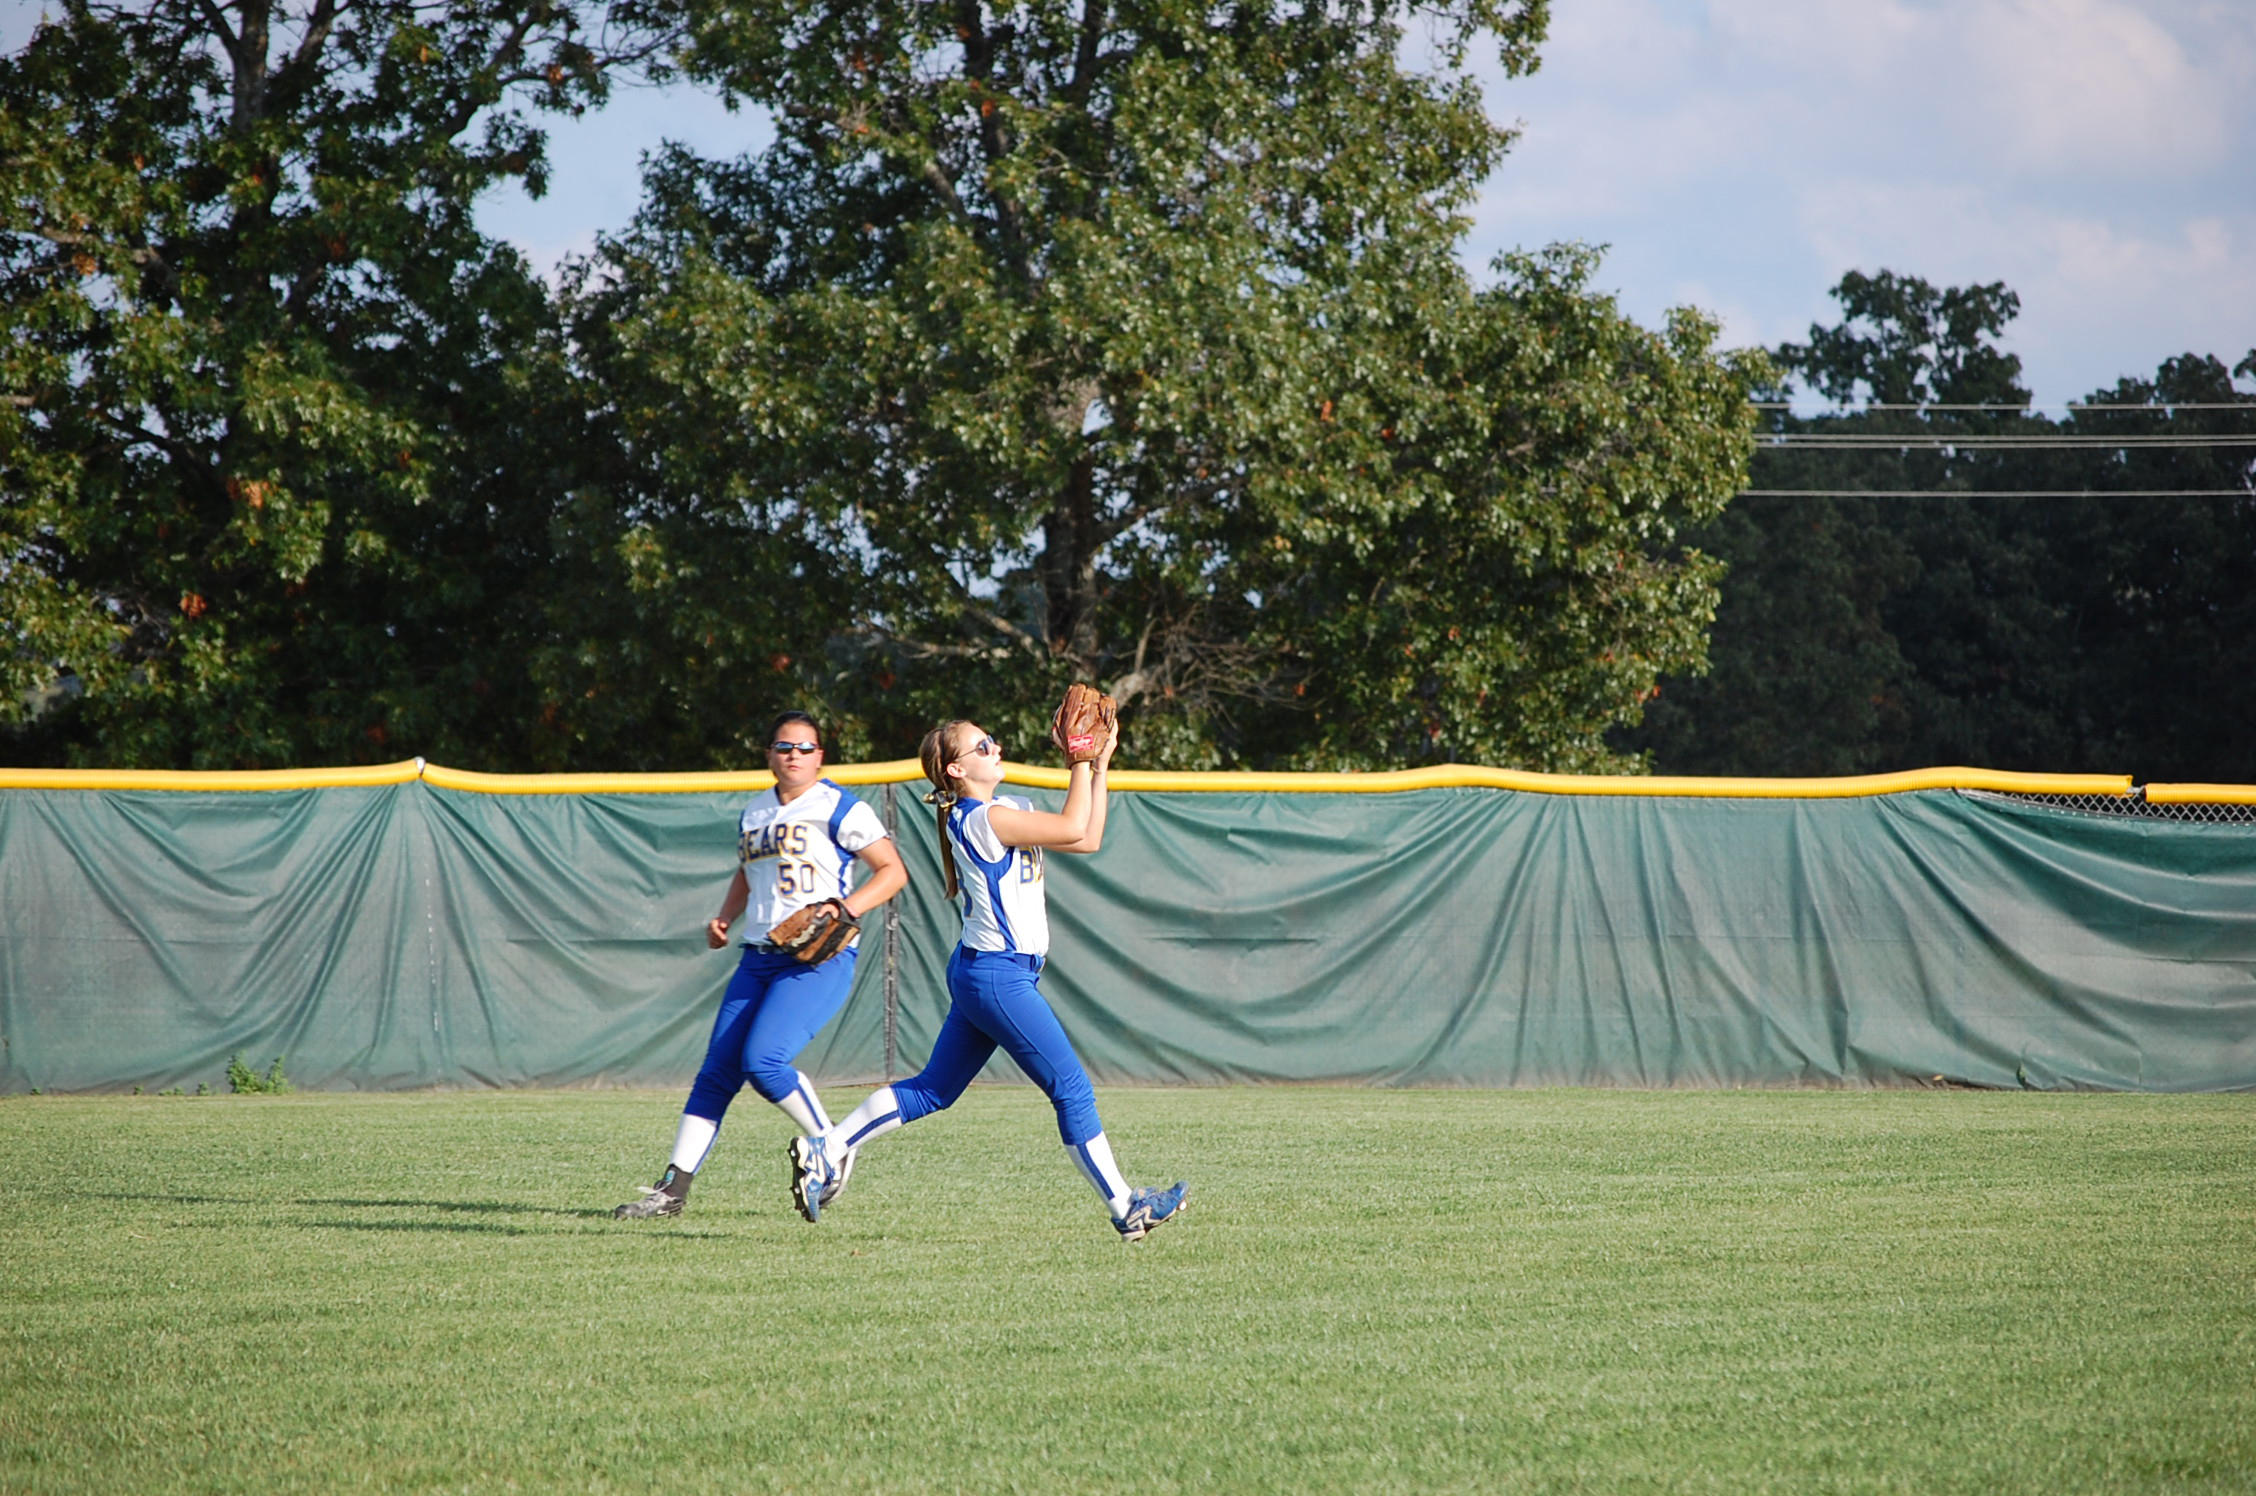 Ava centerfielder Callie Eubanks catches a fly ball for the second out in the top of the third inning here Tuesday. Maranda Yost is backing up the play.